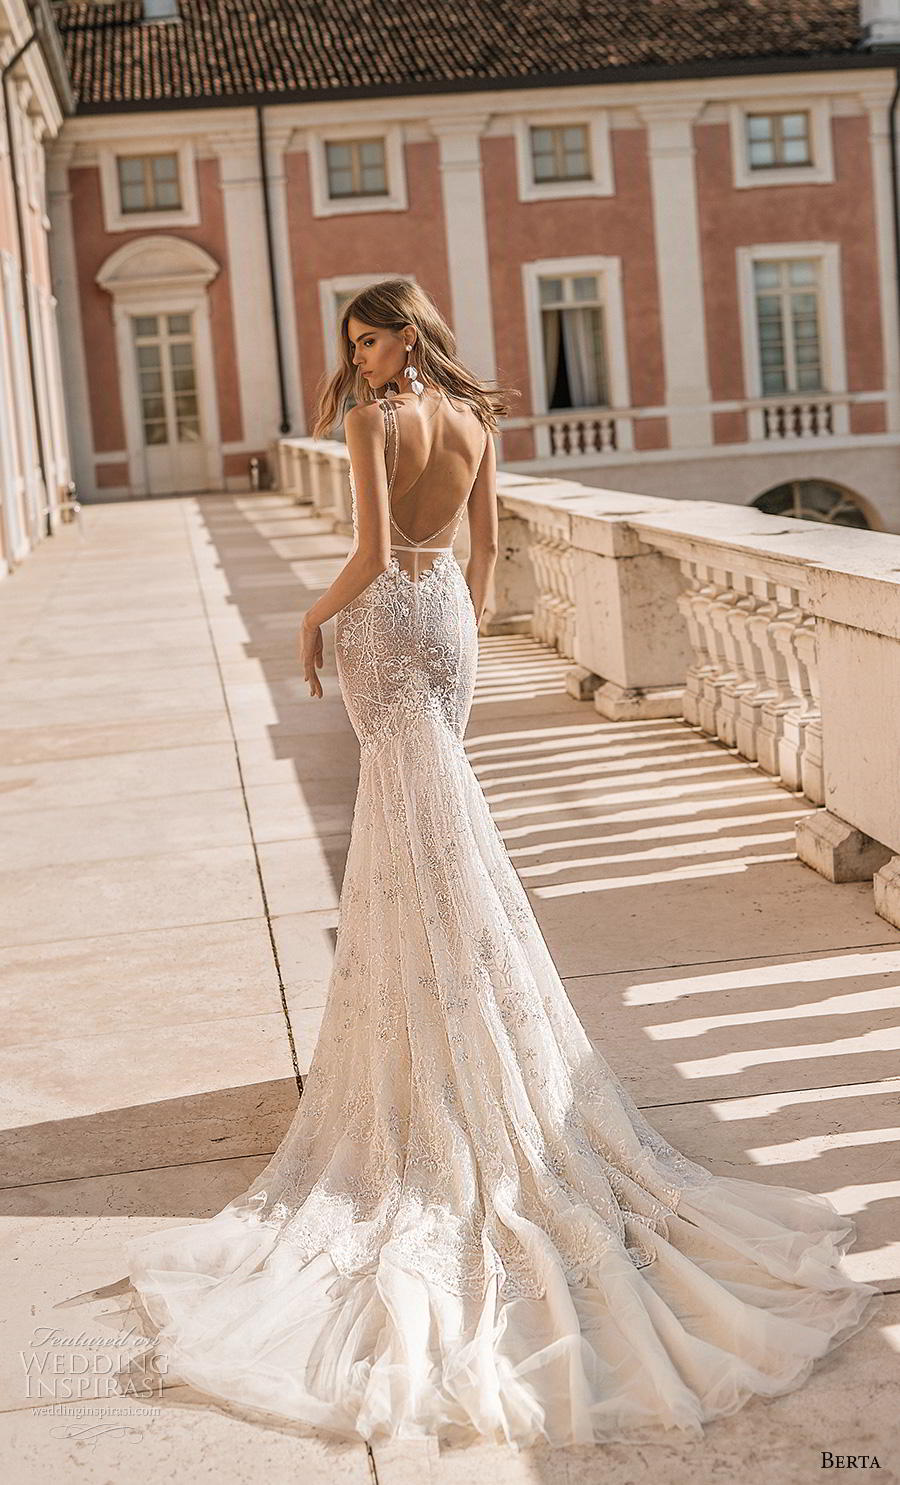 berta 2019 privee bridal thin strap sweetheart neckline heavily embellished bodice bustier sexy romantic mermaid wedding dress low open back backless chapel train (2) bv